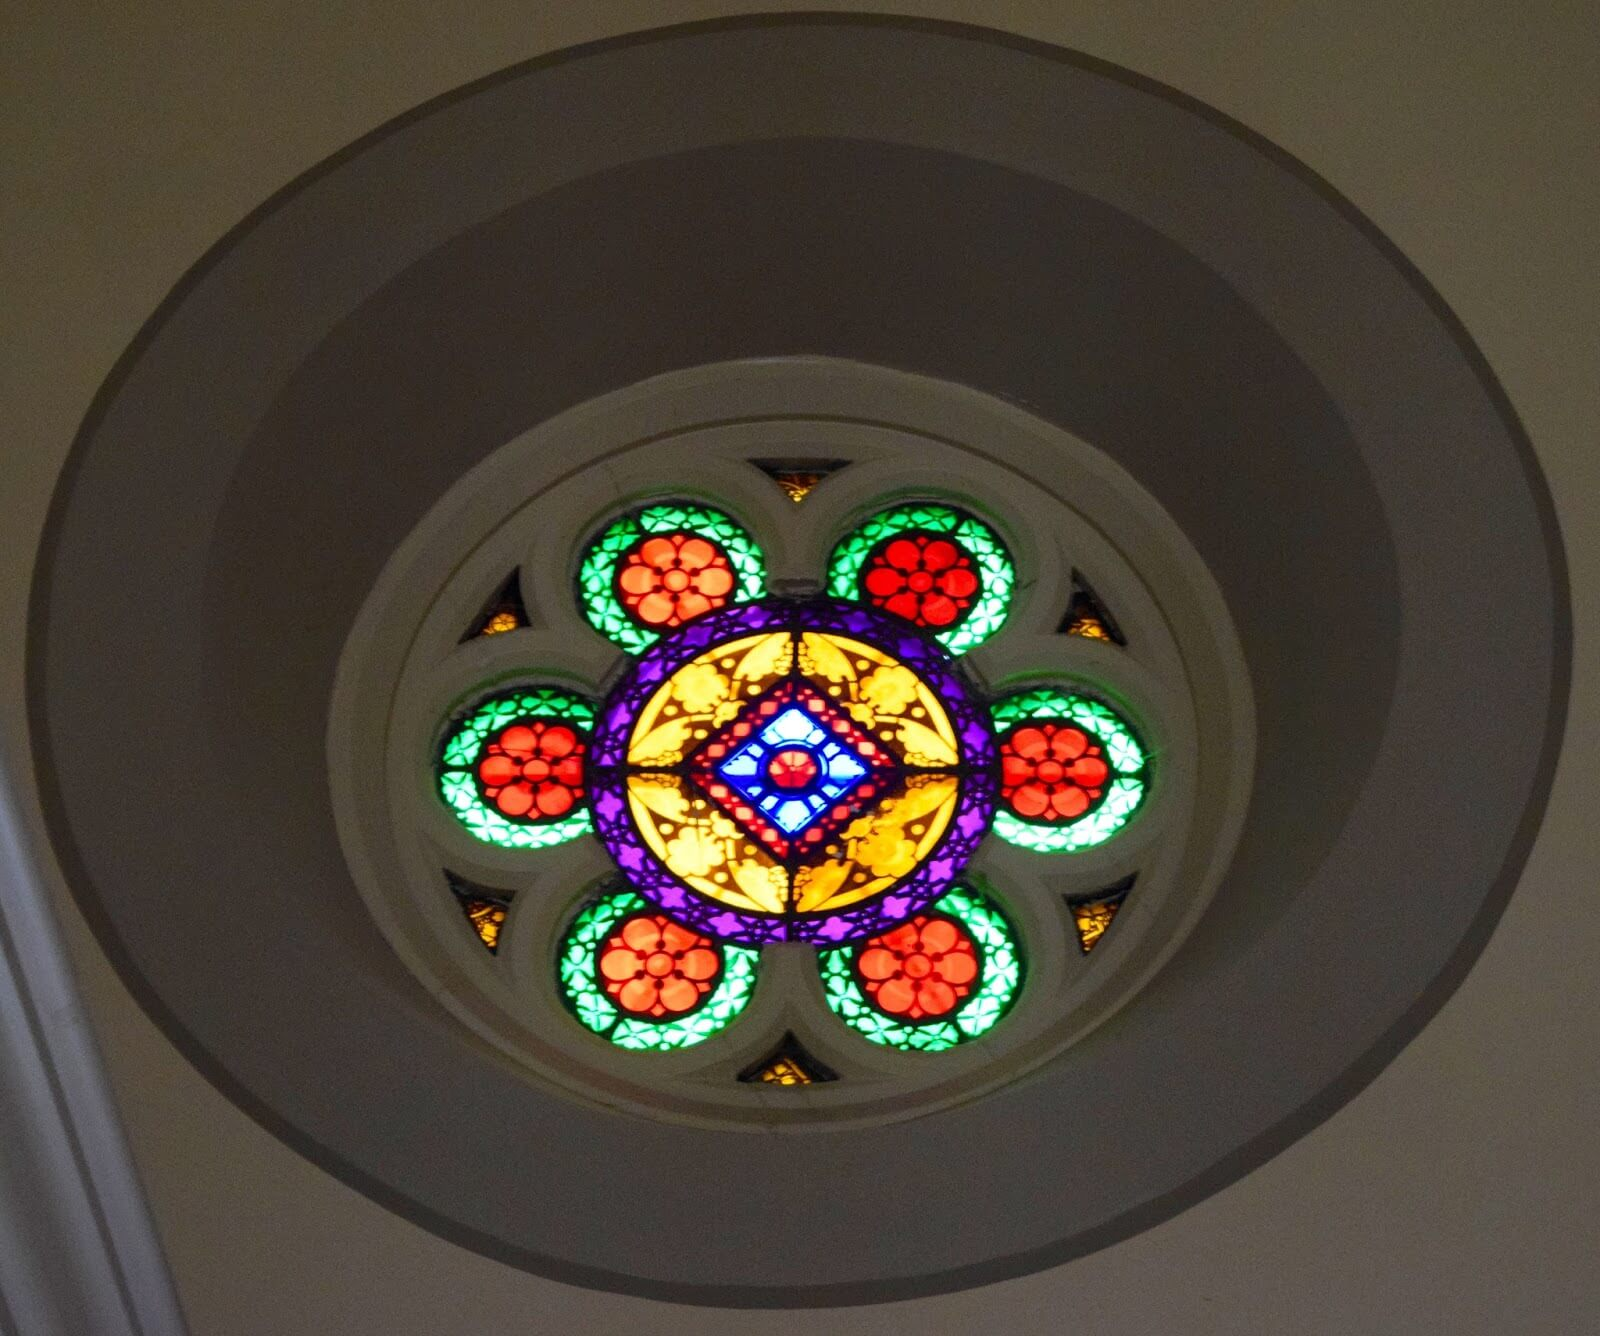 A colourful stain glass.